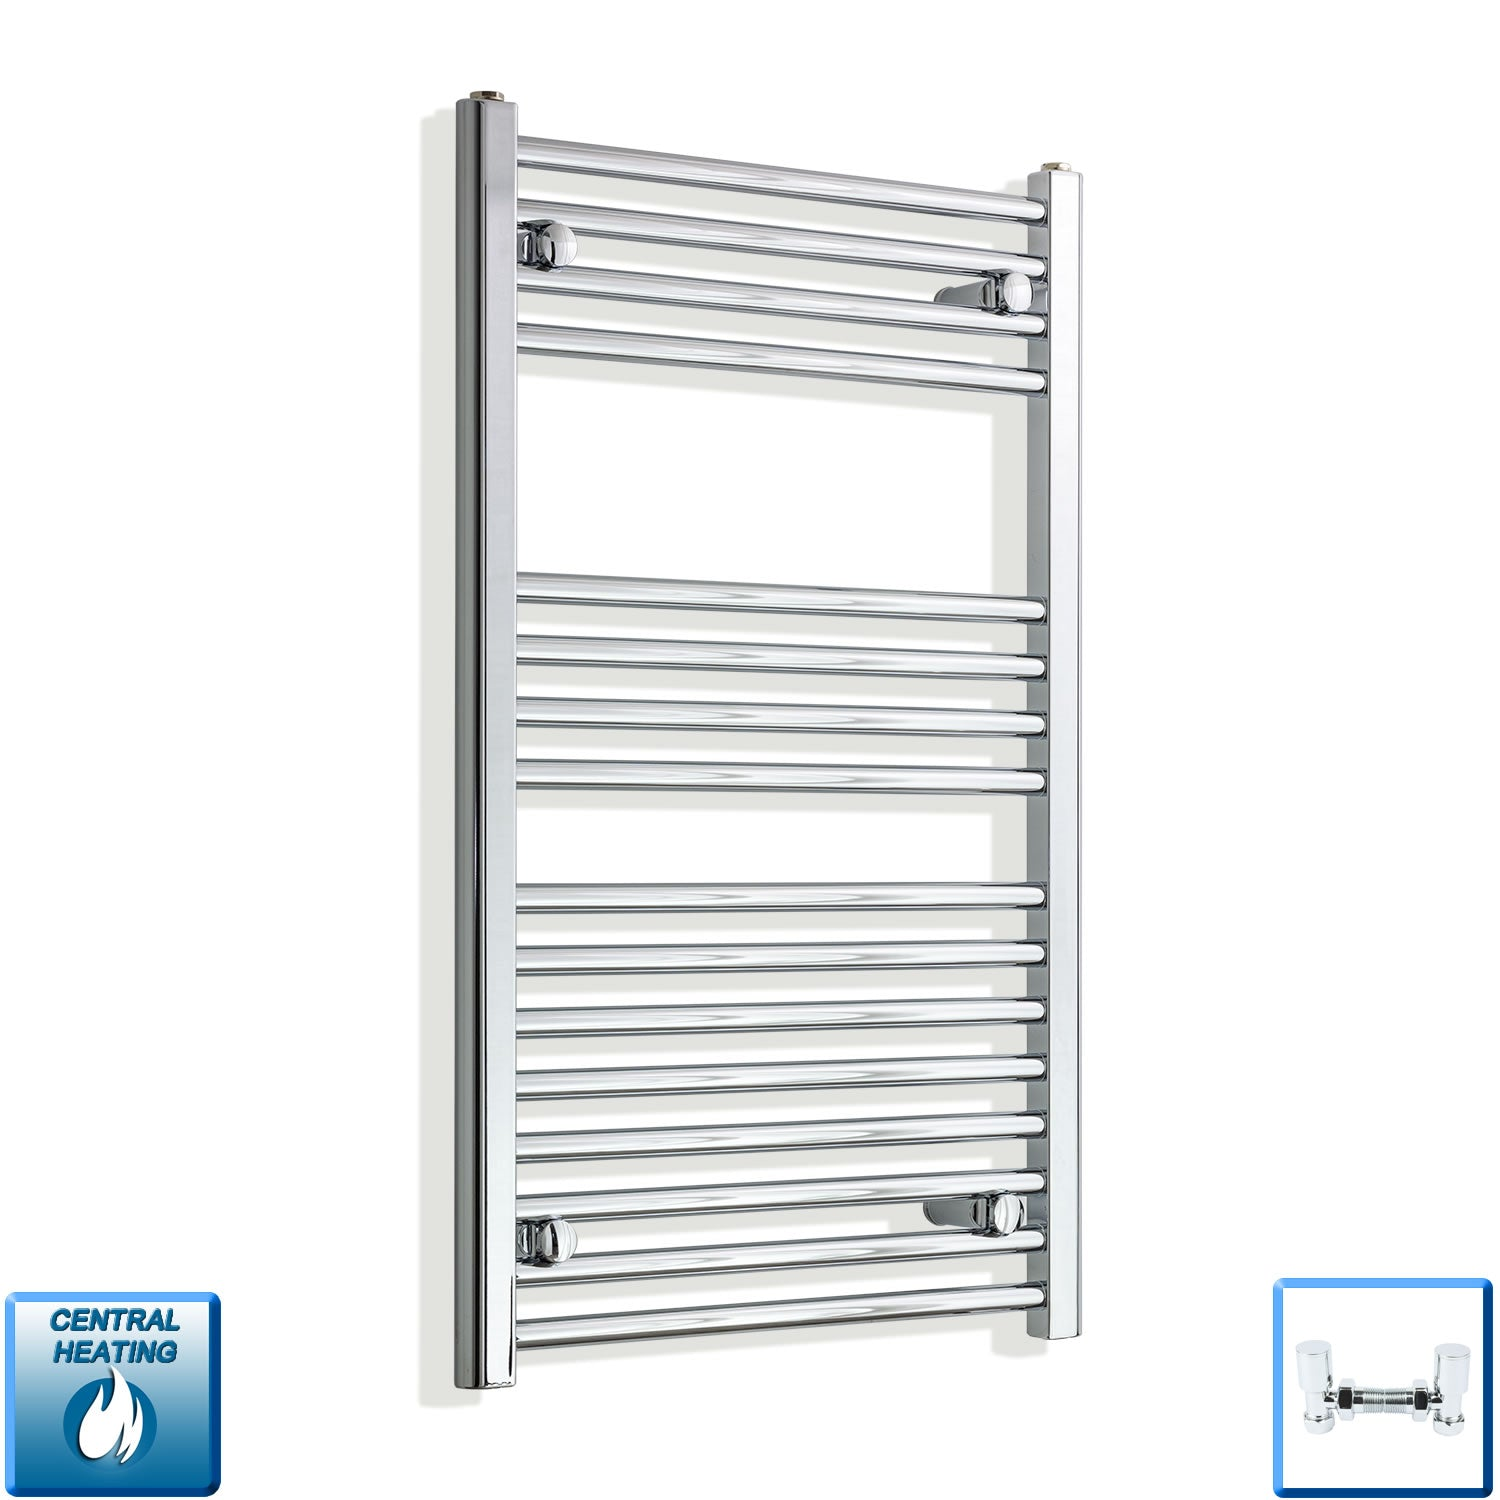 550mm Wide 900mm High Straight Chrome Heated Towel Rail Radiator HTR Central Heating,With Angled Valve